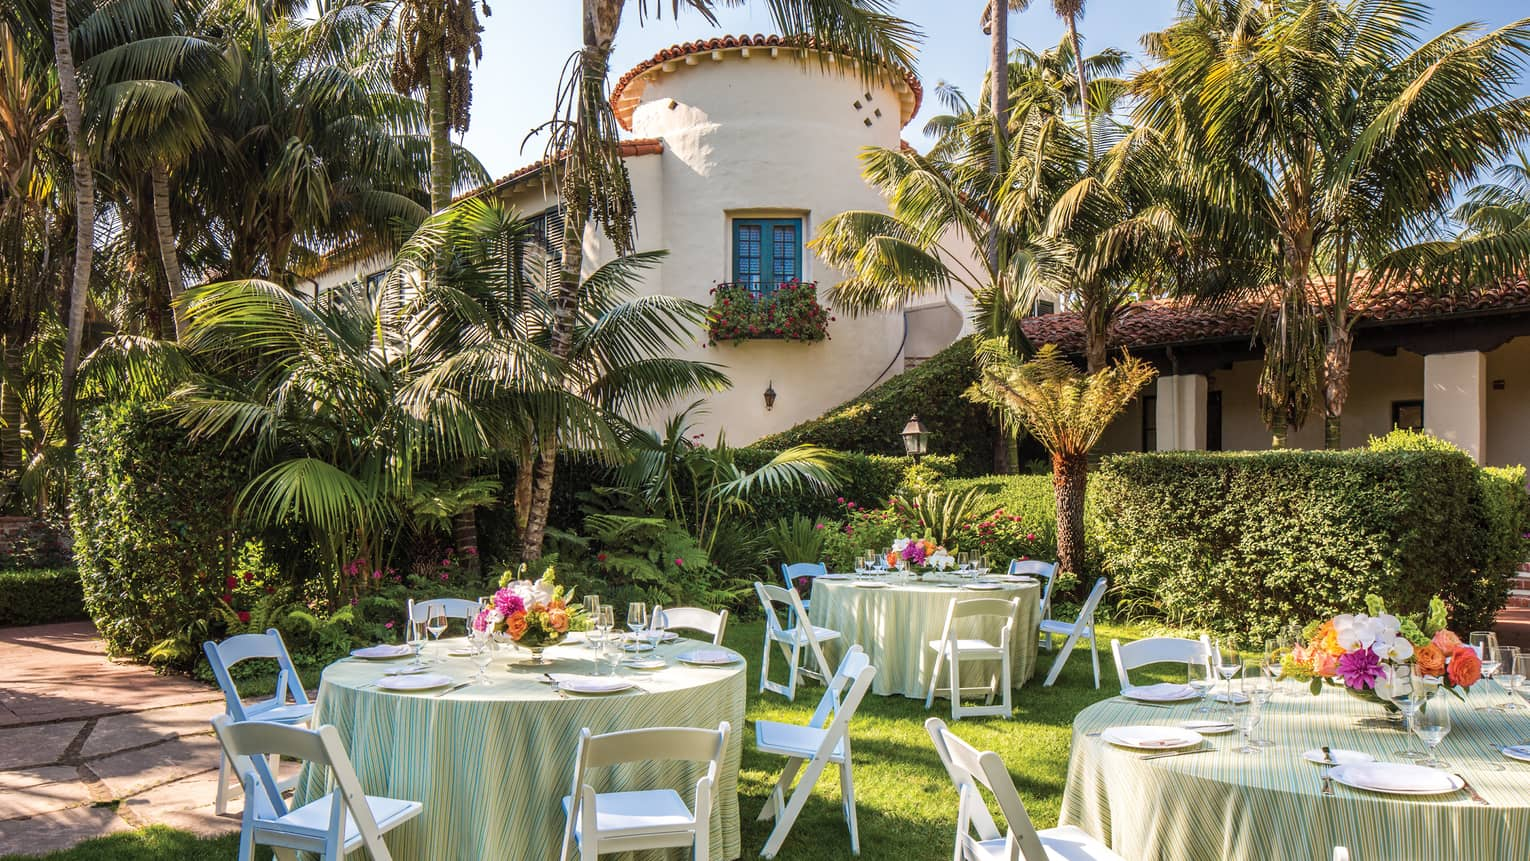 Escala Garden banquet tables on lawn under palm trees